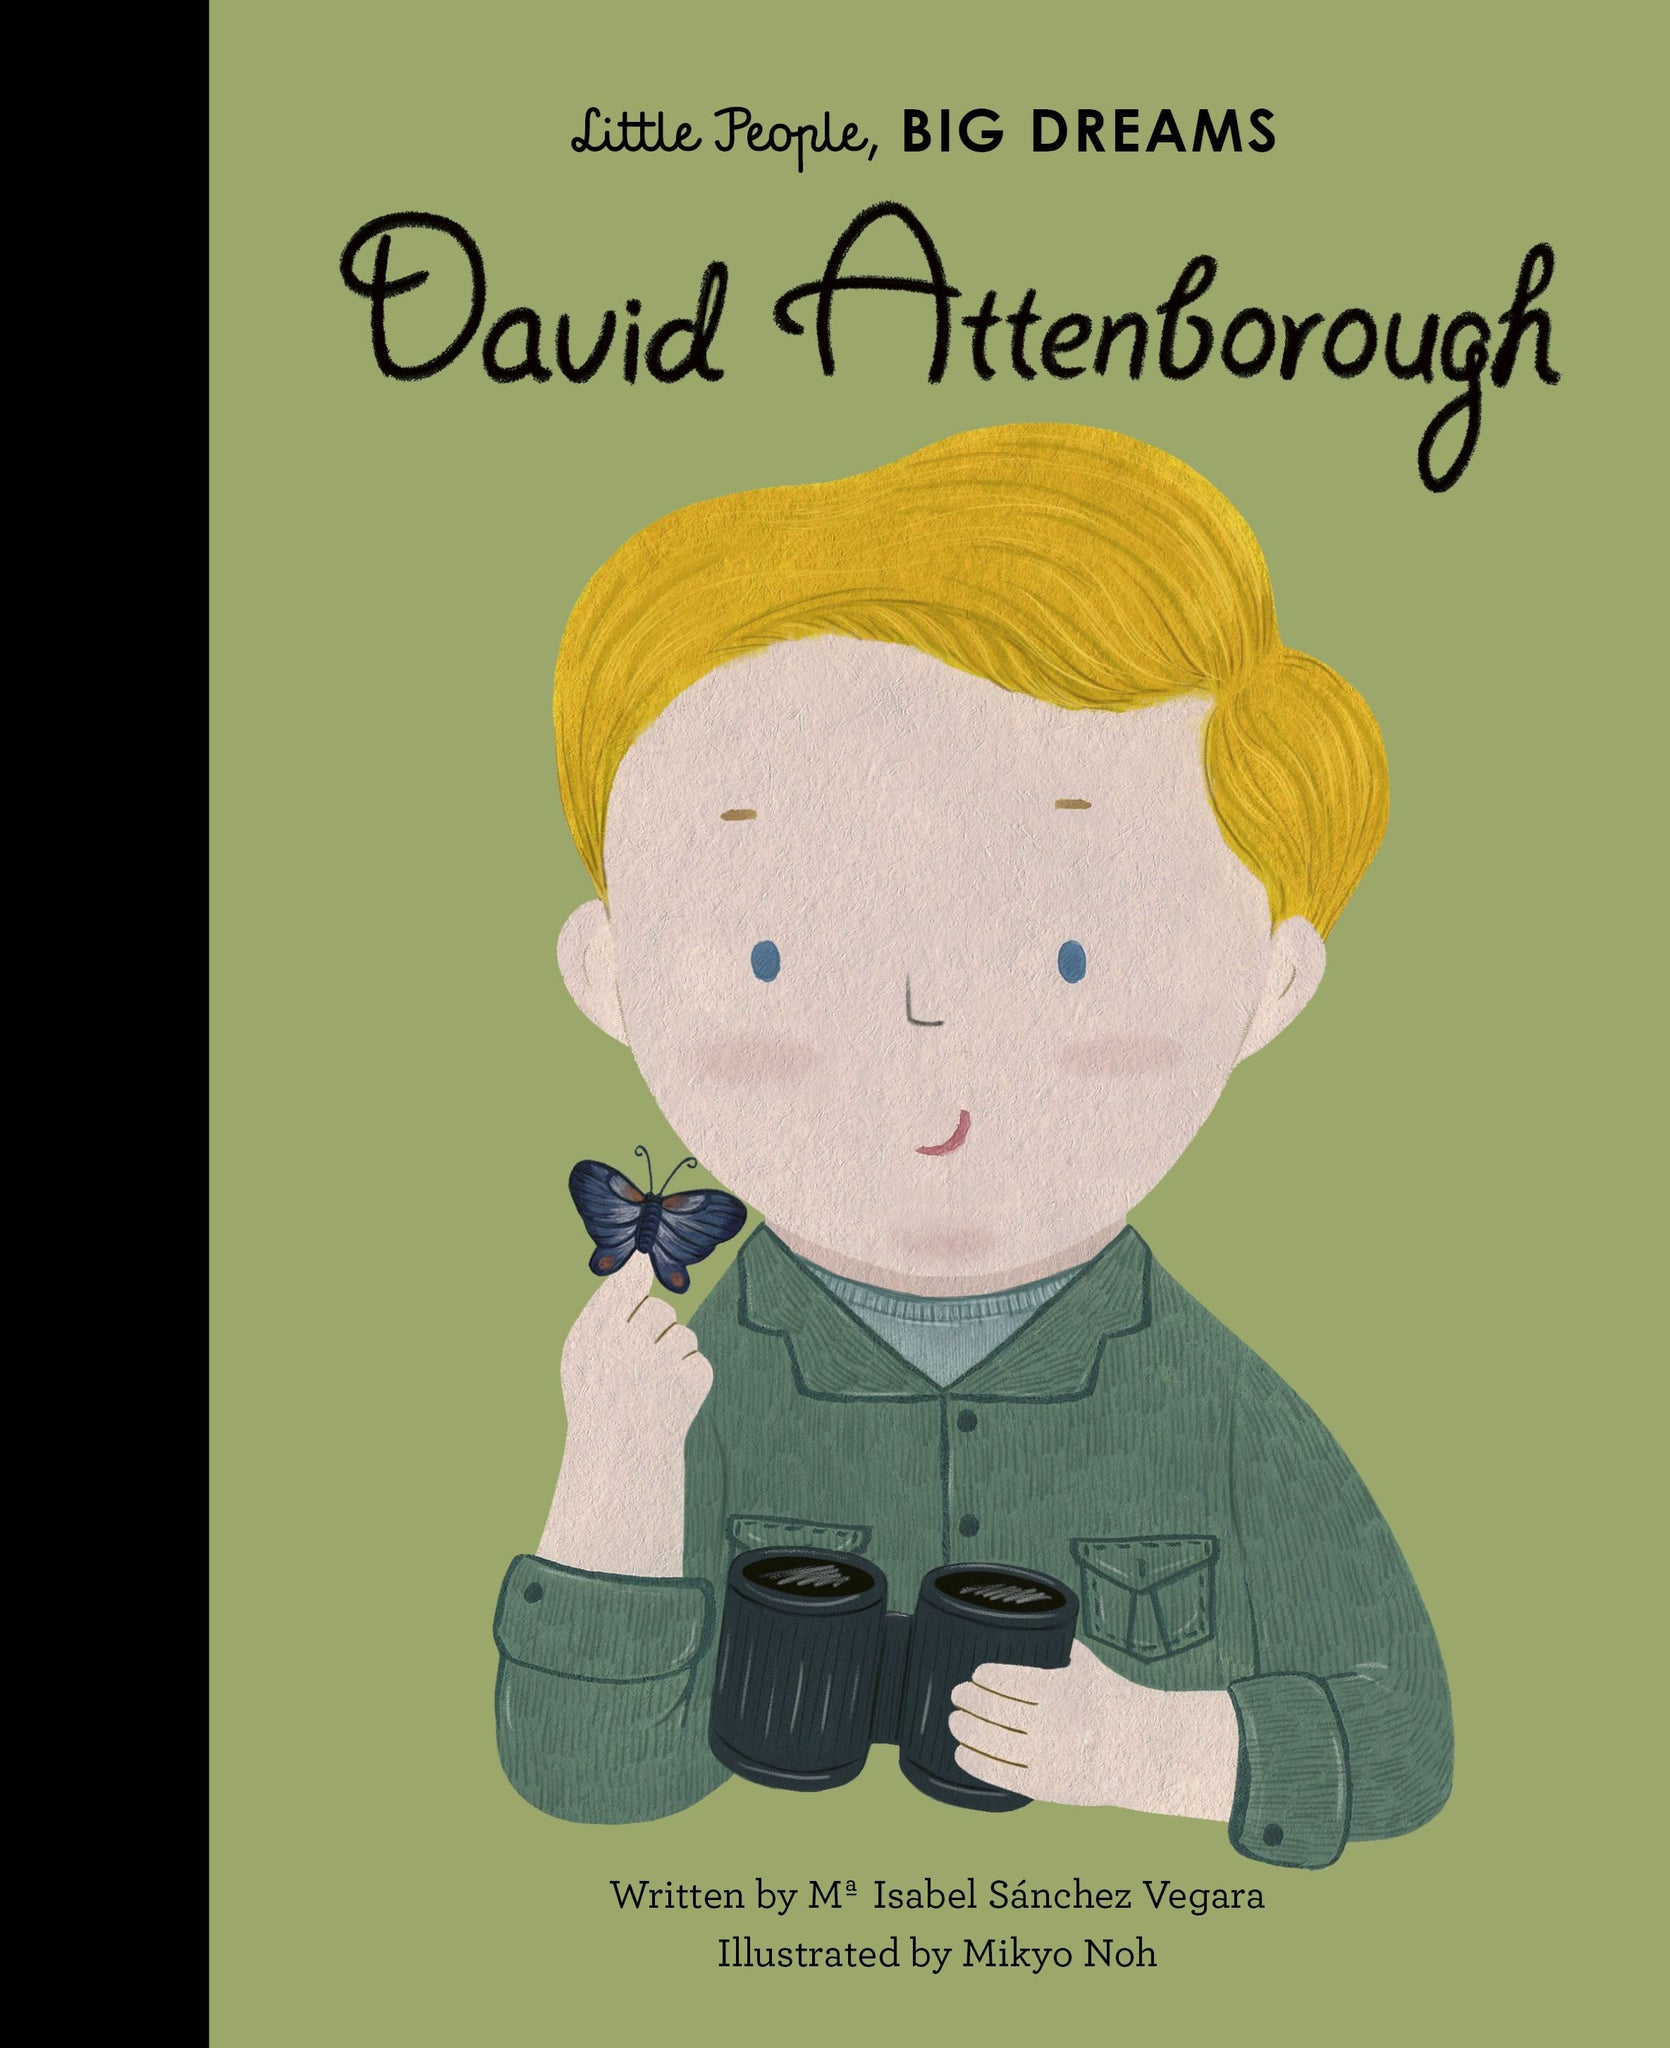 inspiring book for children about David Attenborough